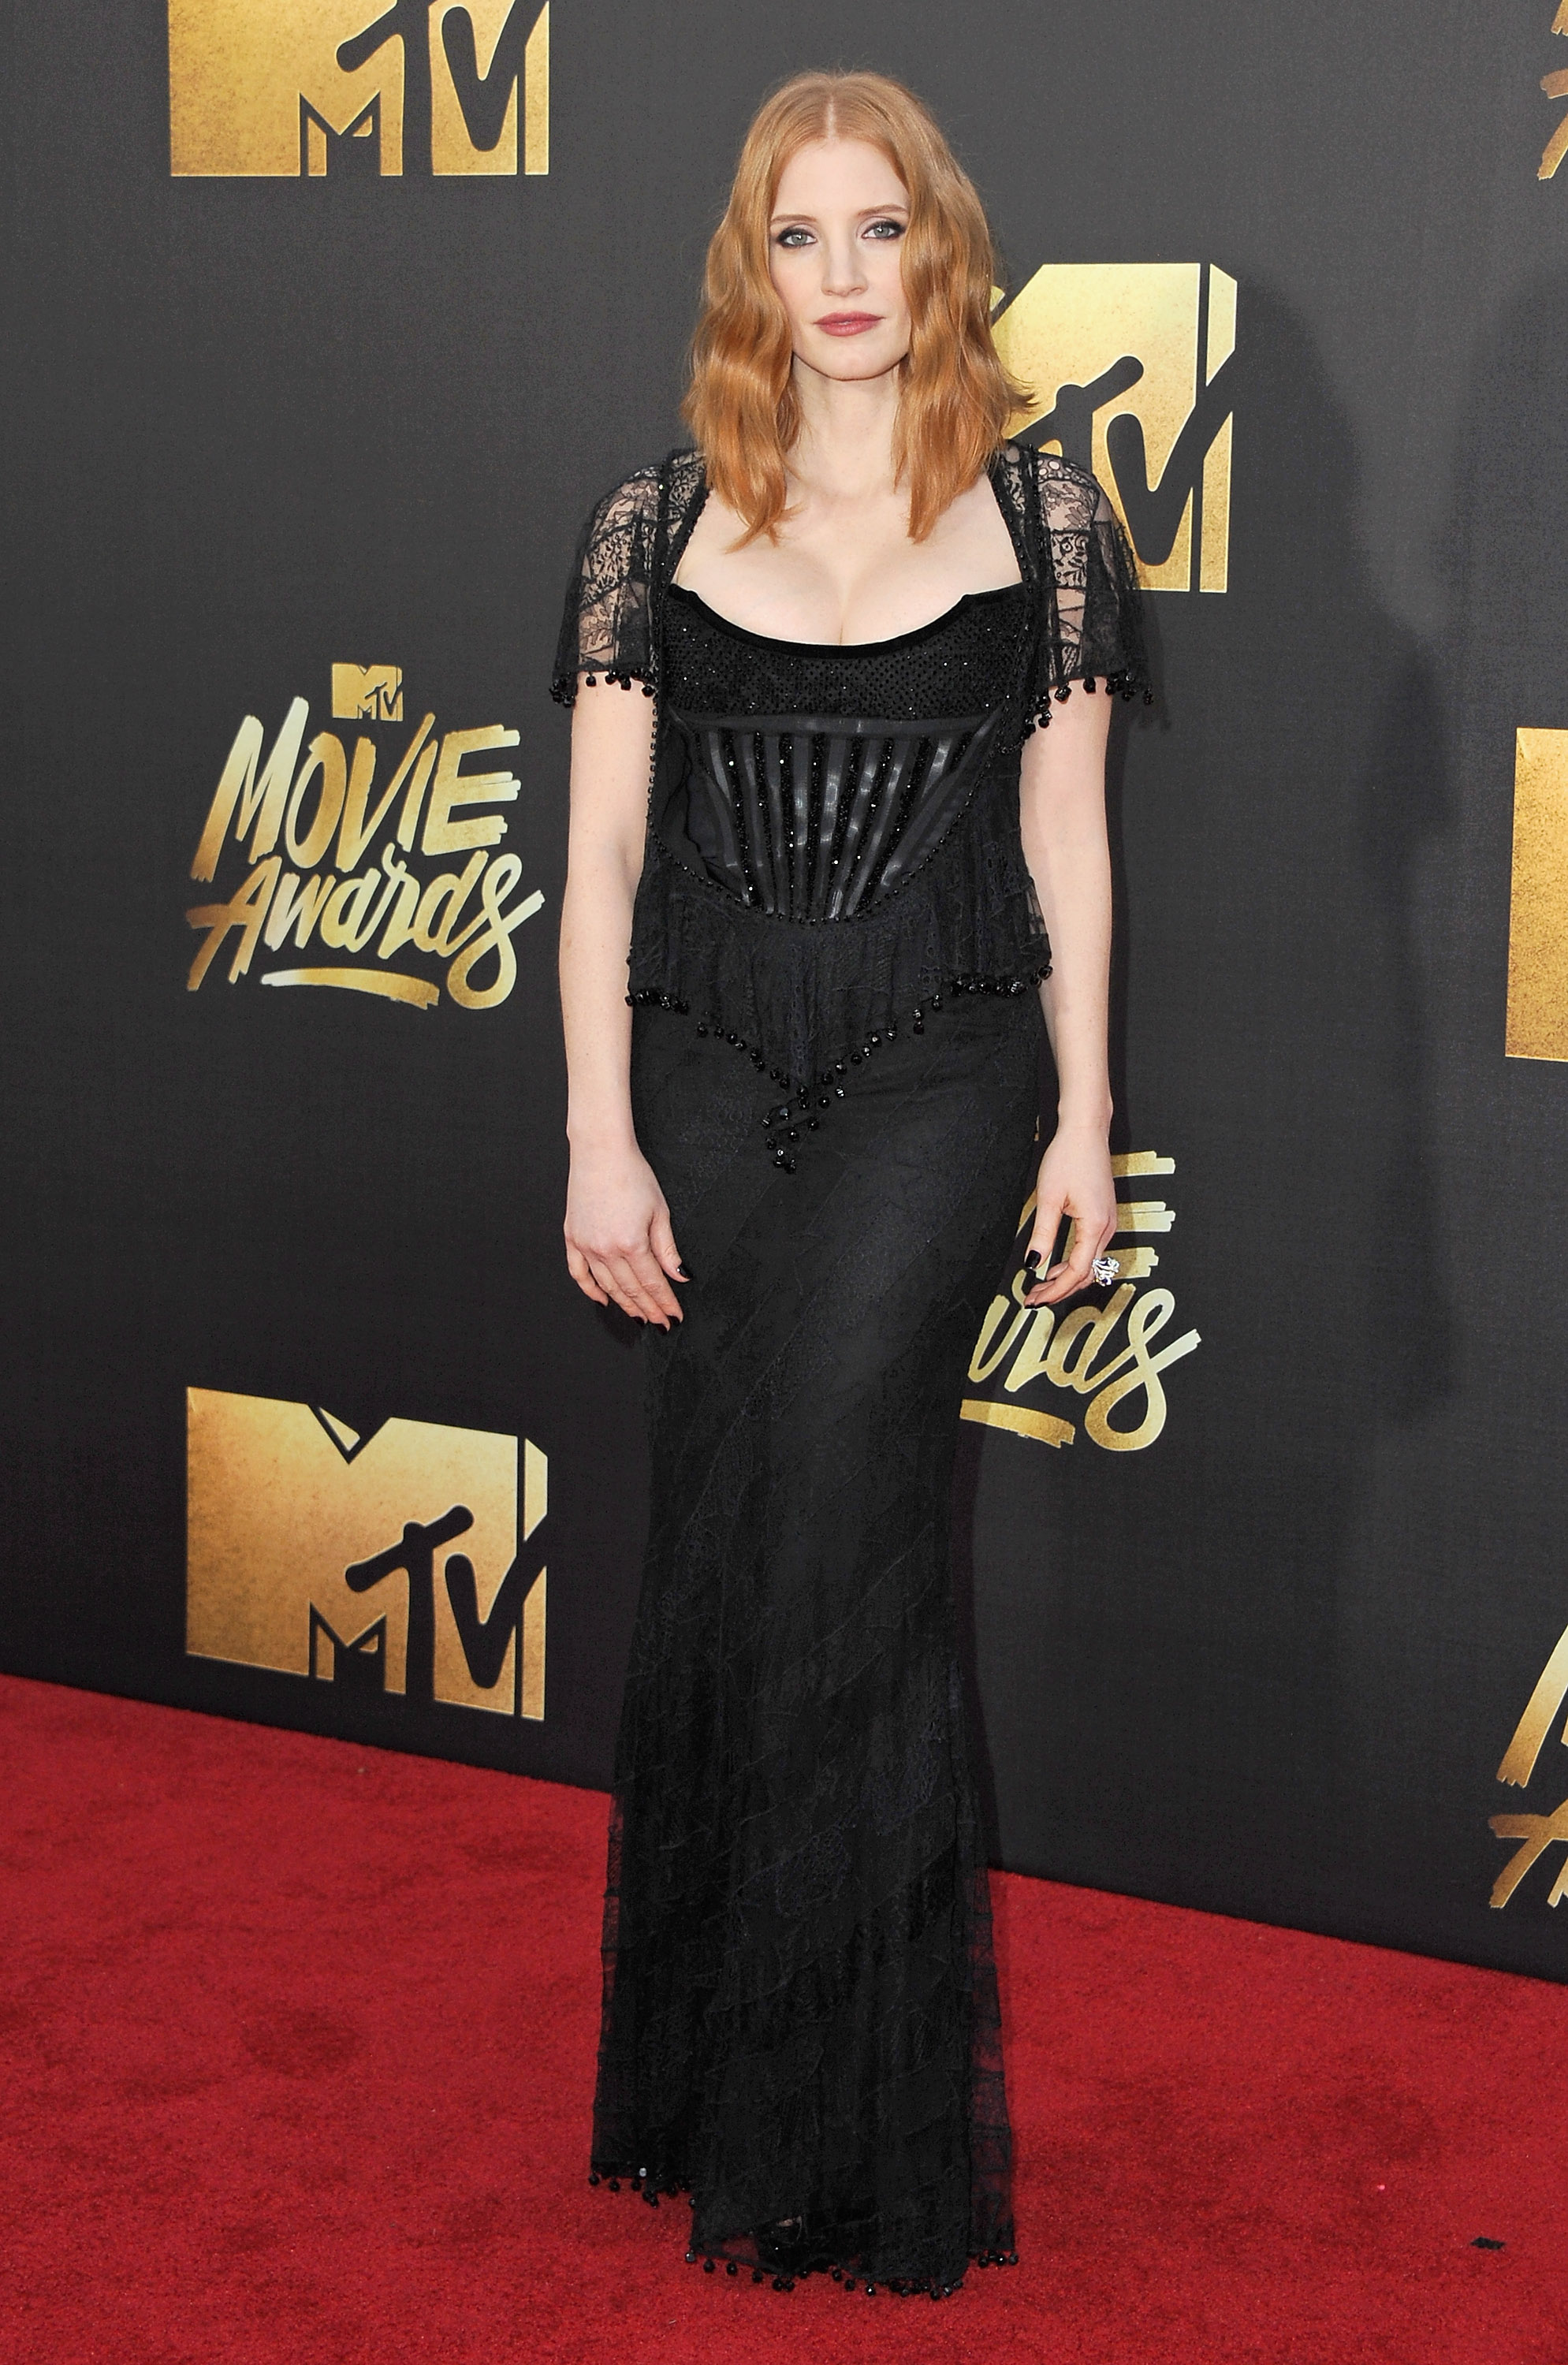 Jessica Chastain attends the 2016 MTV Movie Awards at Warner Bros. Studios on April 9, 2016 in Burbank, Calif.